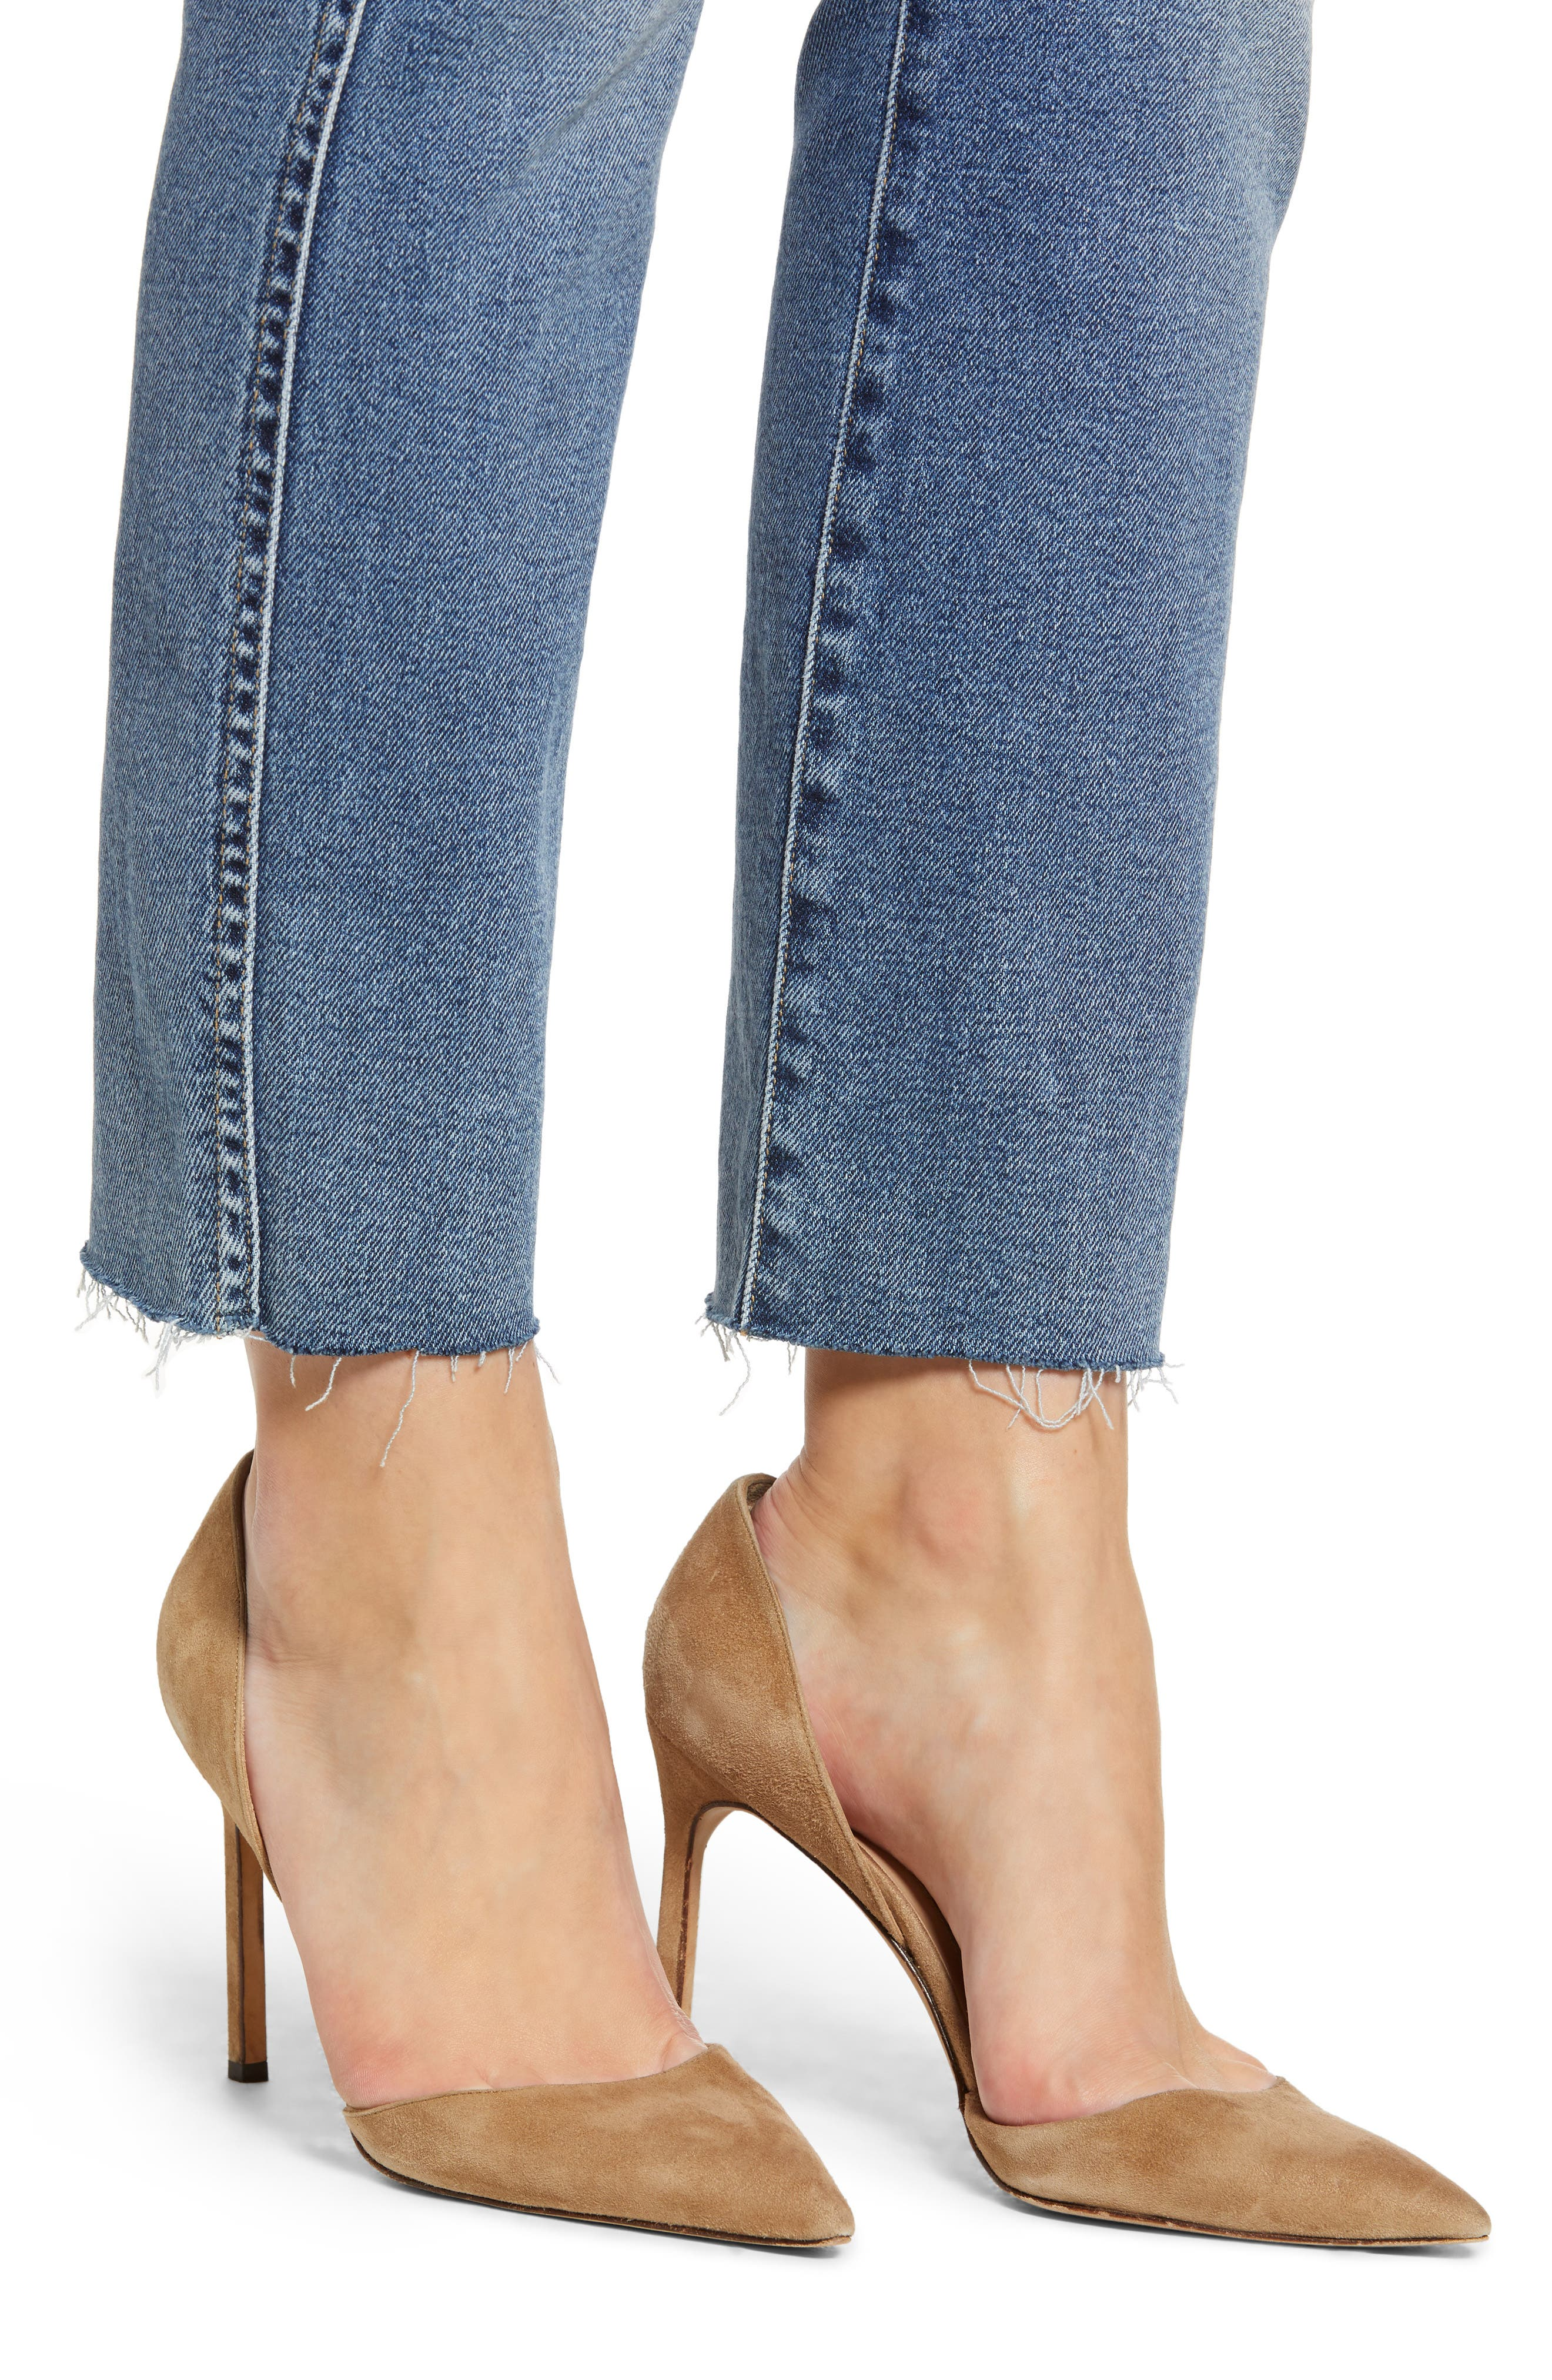 7 FOR ALL MANKIND<SUP>®</SUP>, Luxe Vintage Edie Cutoff Hem Straight Leg Jeans, Alternate thumbnail 5, color, LUXE VINTAGE MUSE